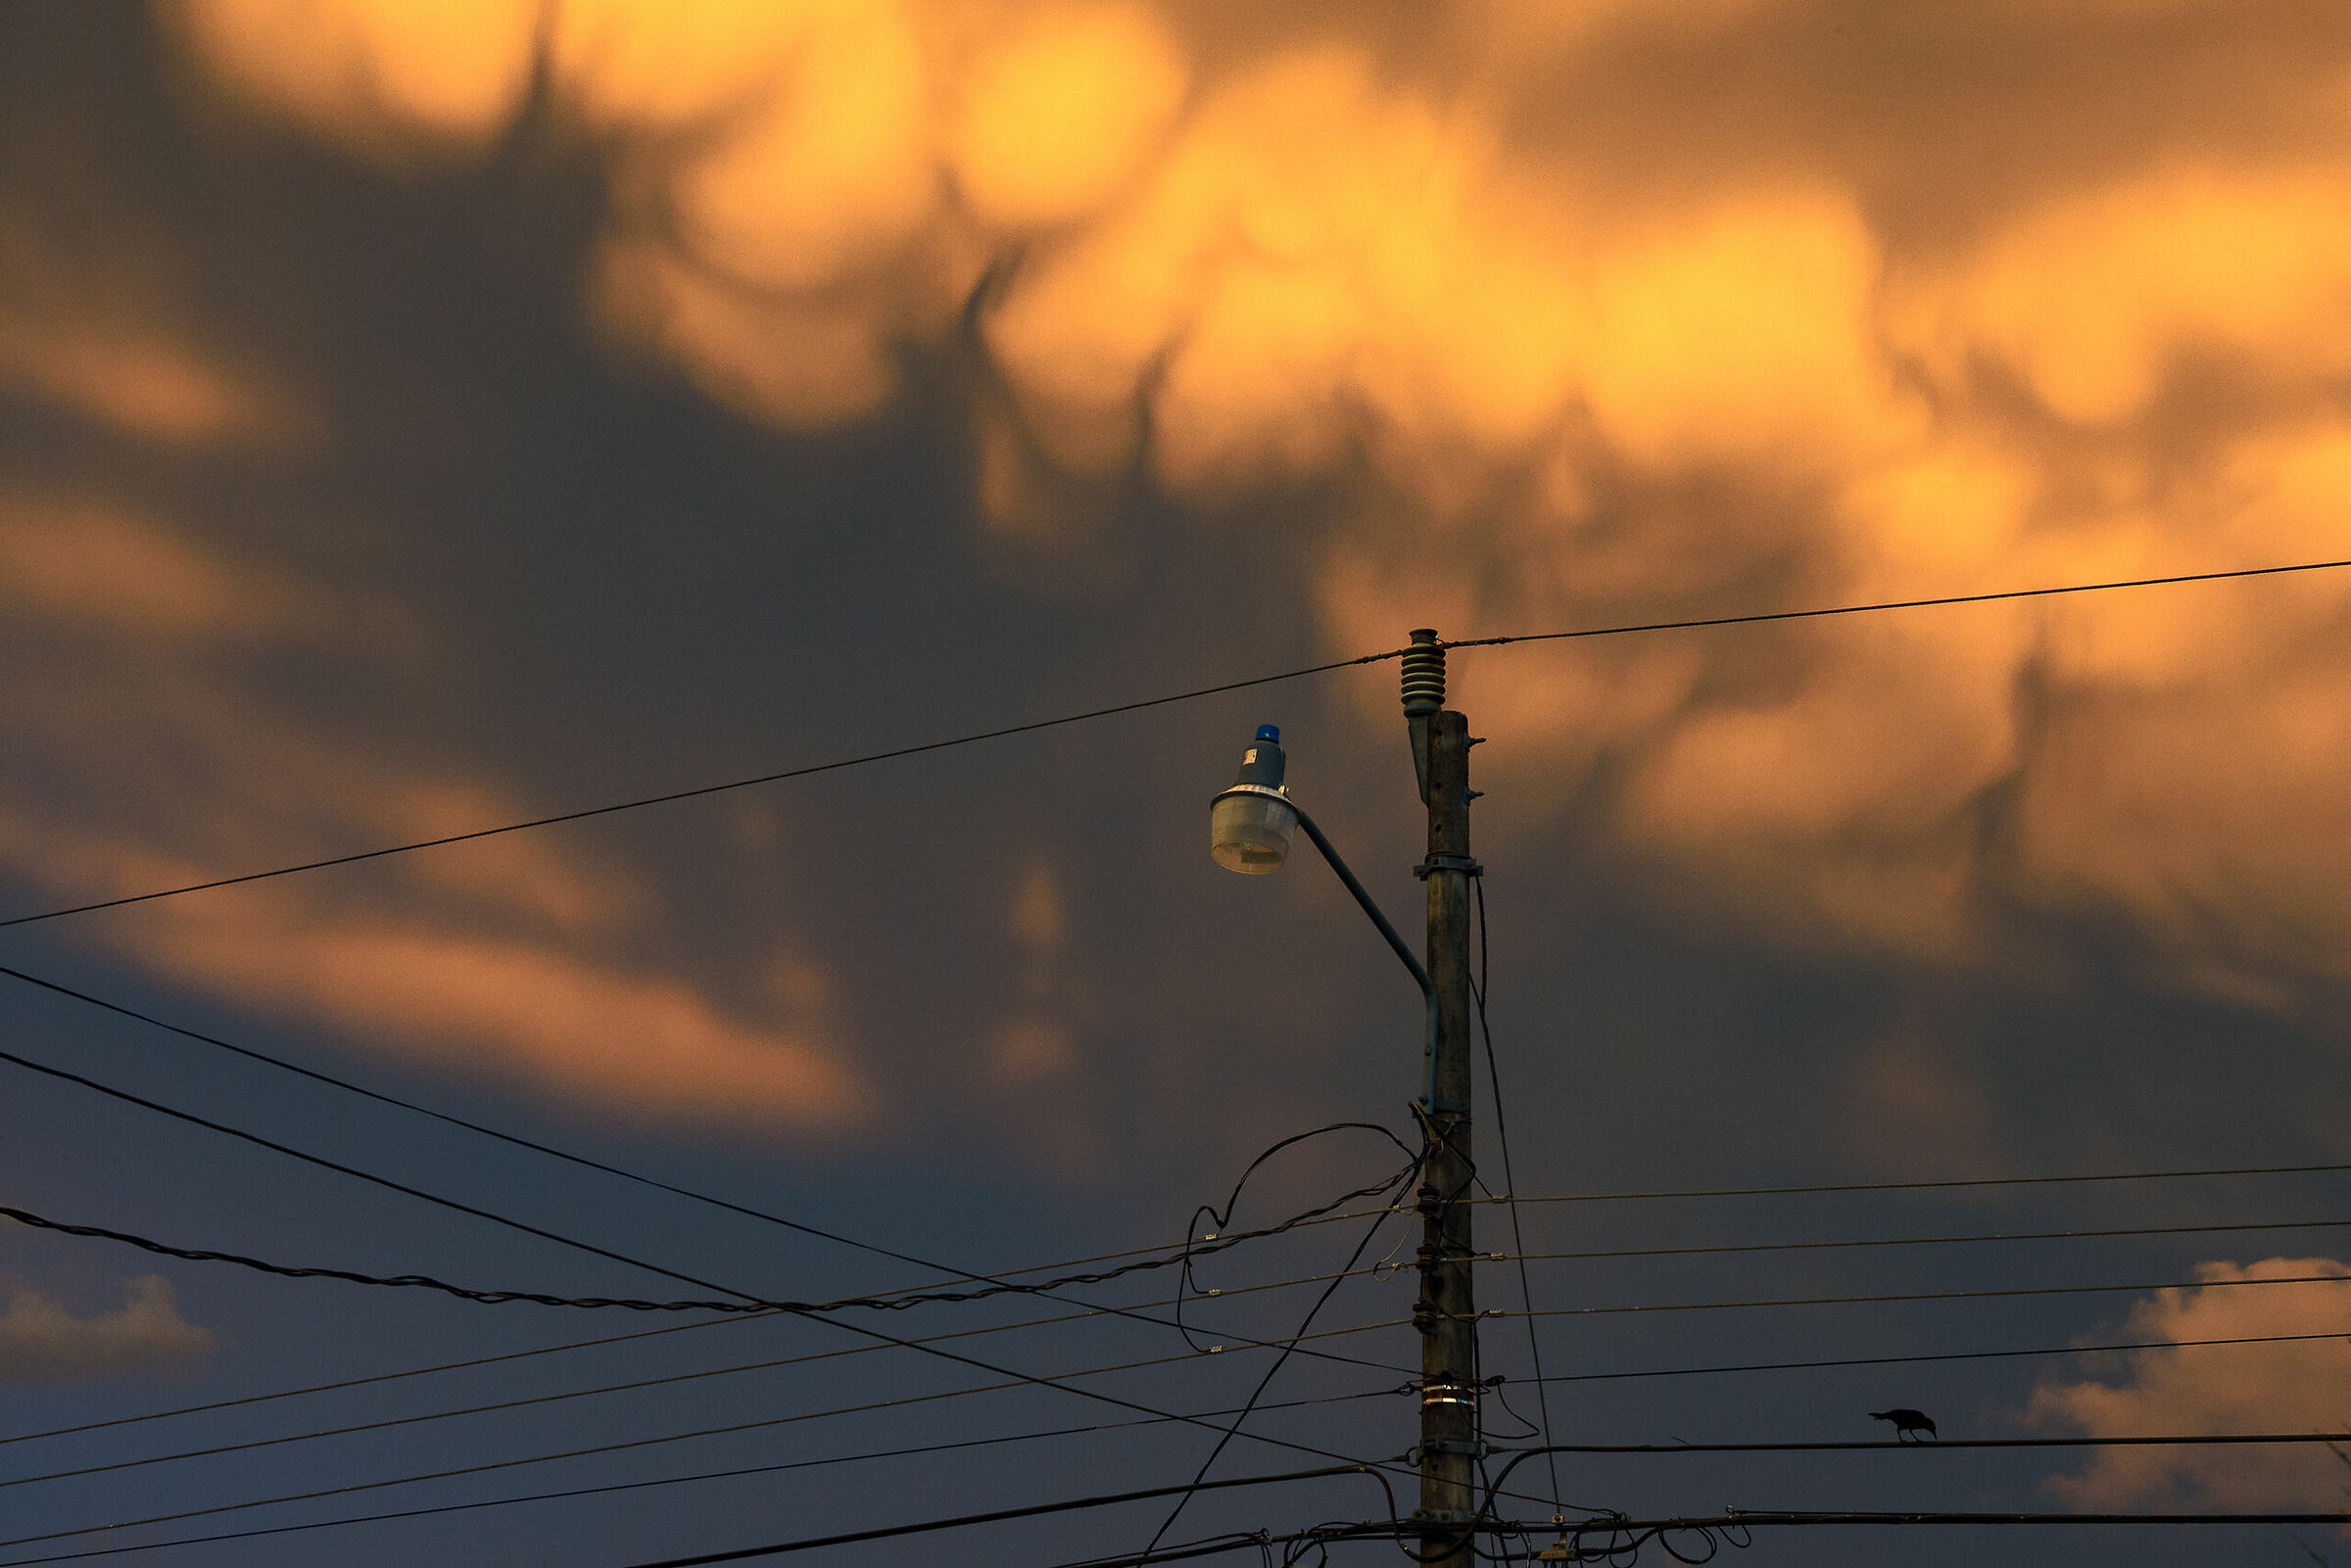 Sunset on the wires......